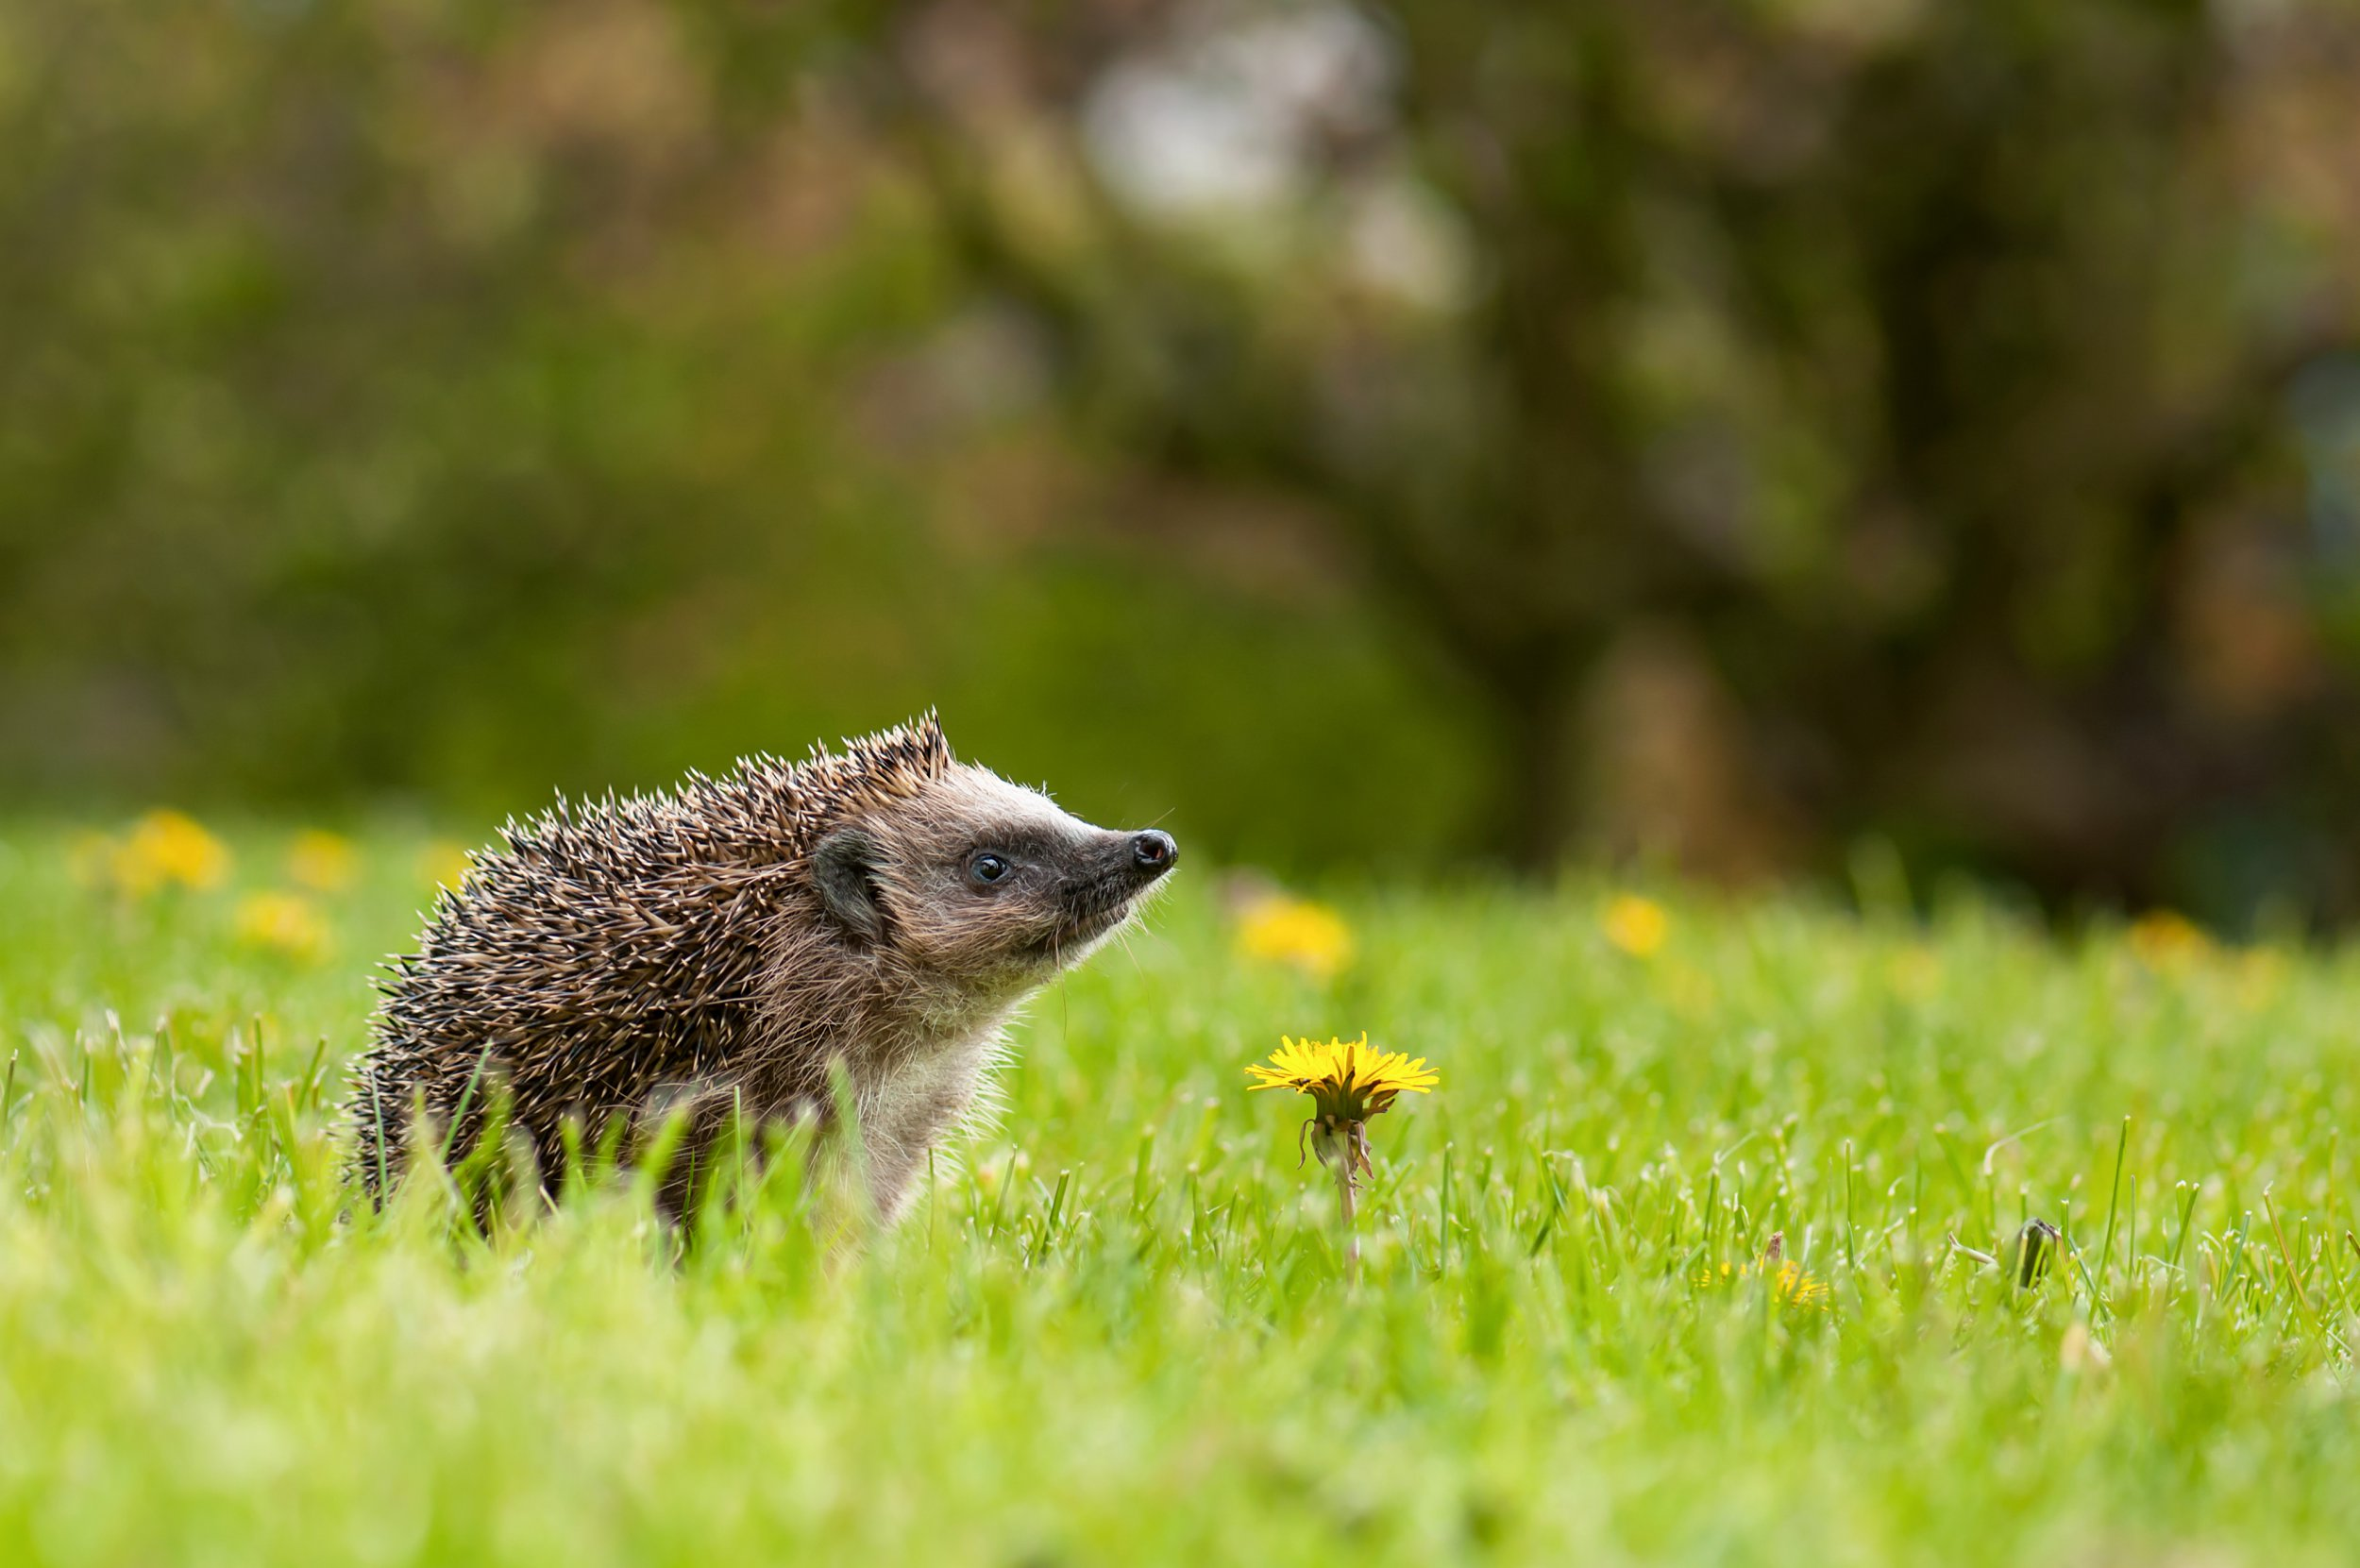 European hedgehog (Erinaceus europaeus) on the meadow with dandelion flower (Taraxacum officinale) in the garden.